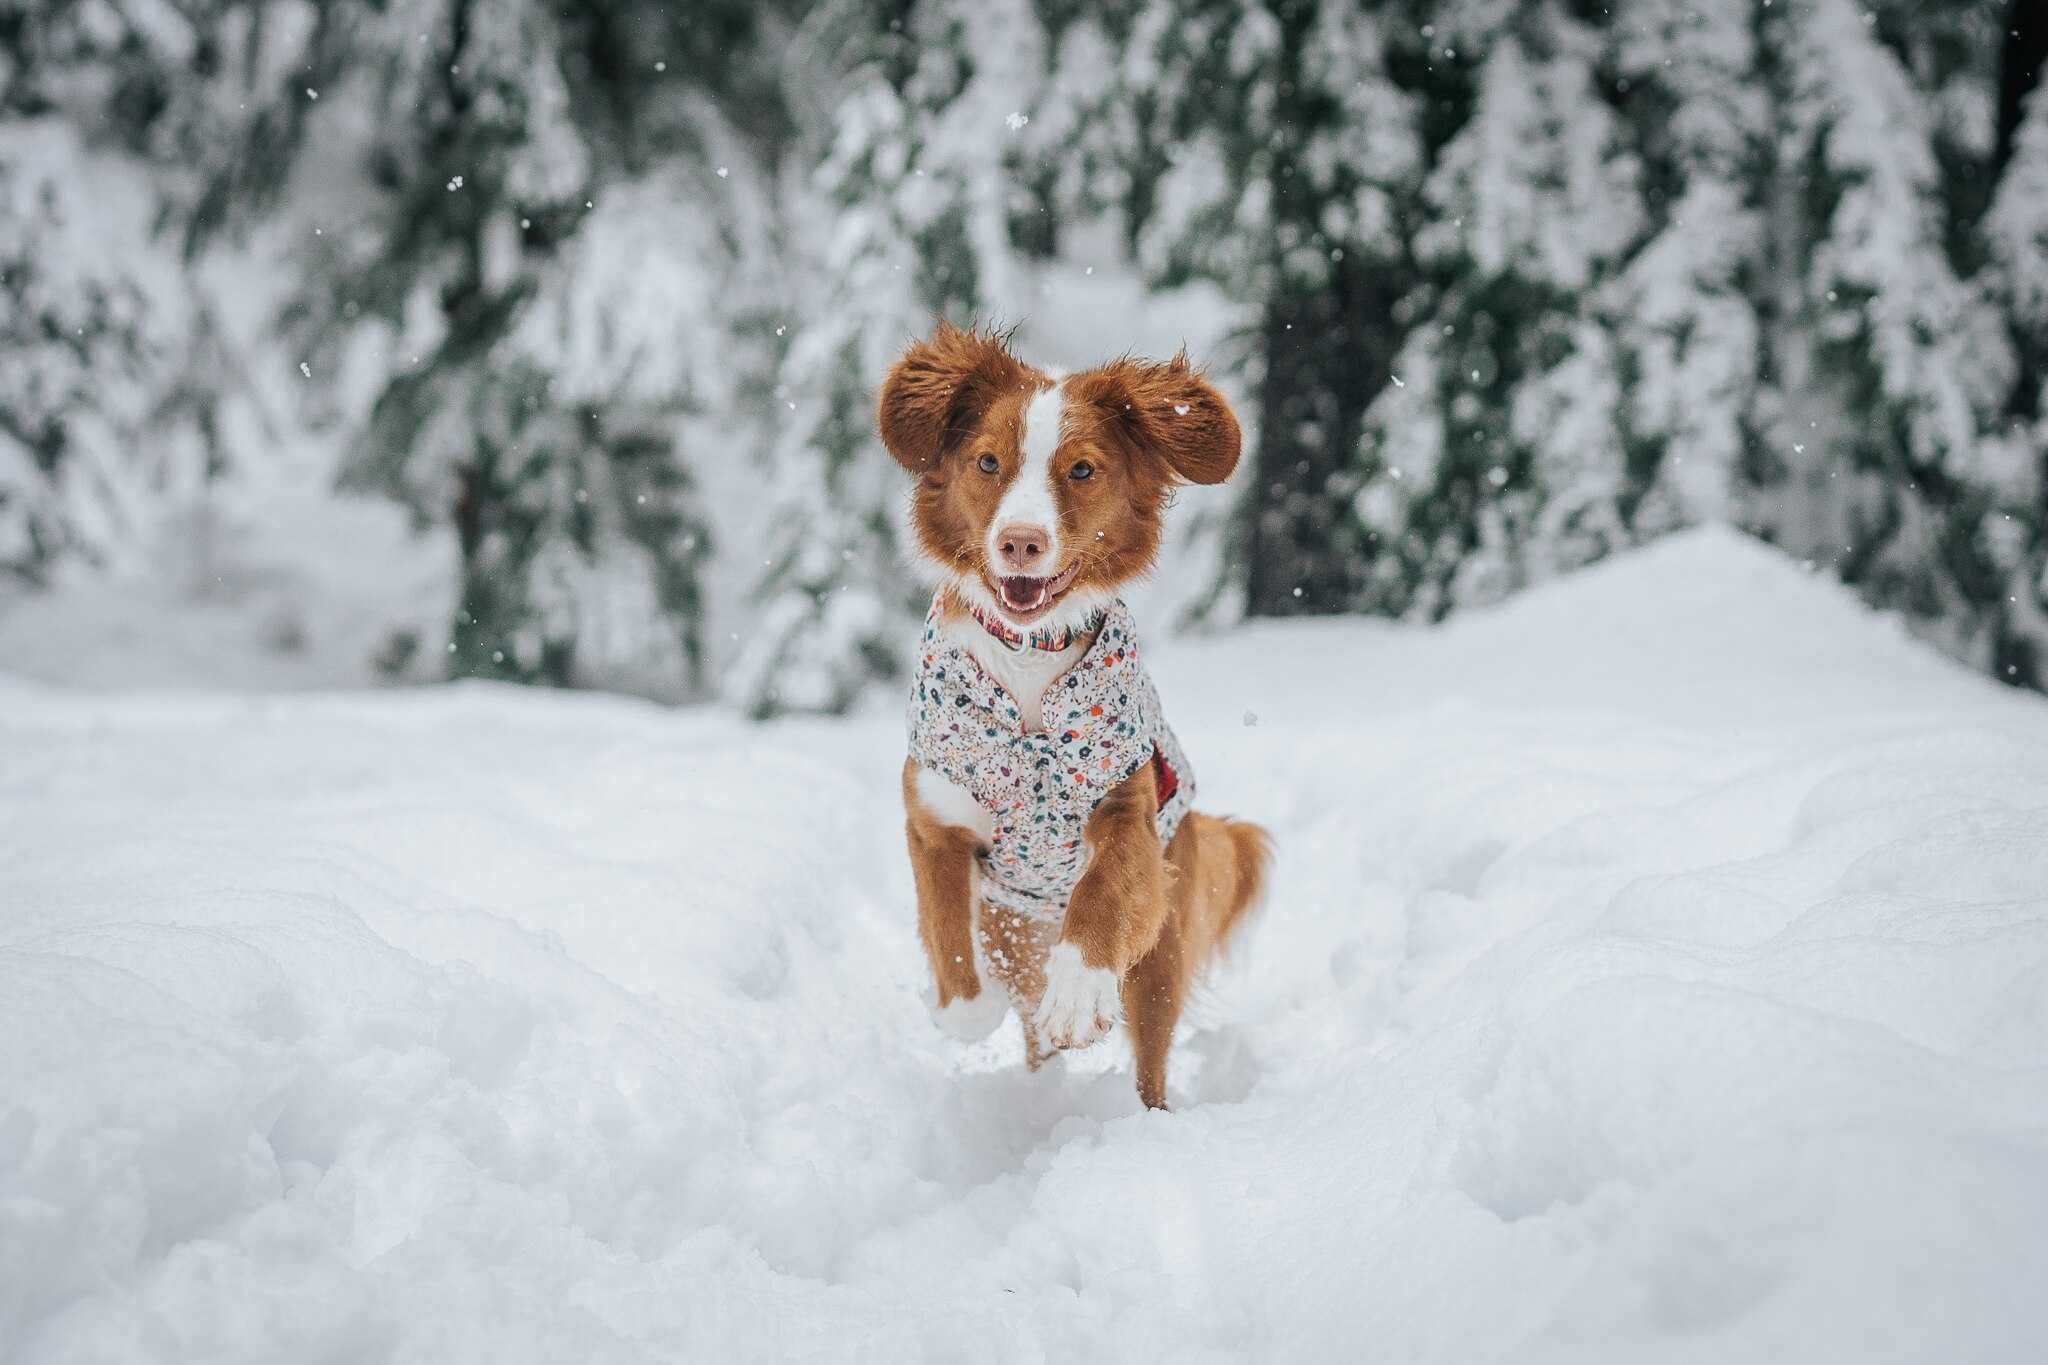 Running in cold weather: tips and tricks for healthy, effective training for you and your dog